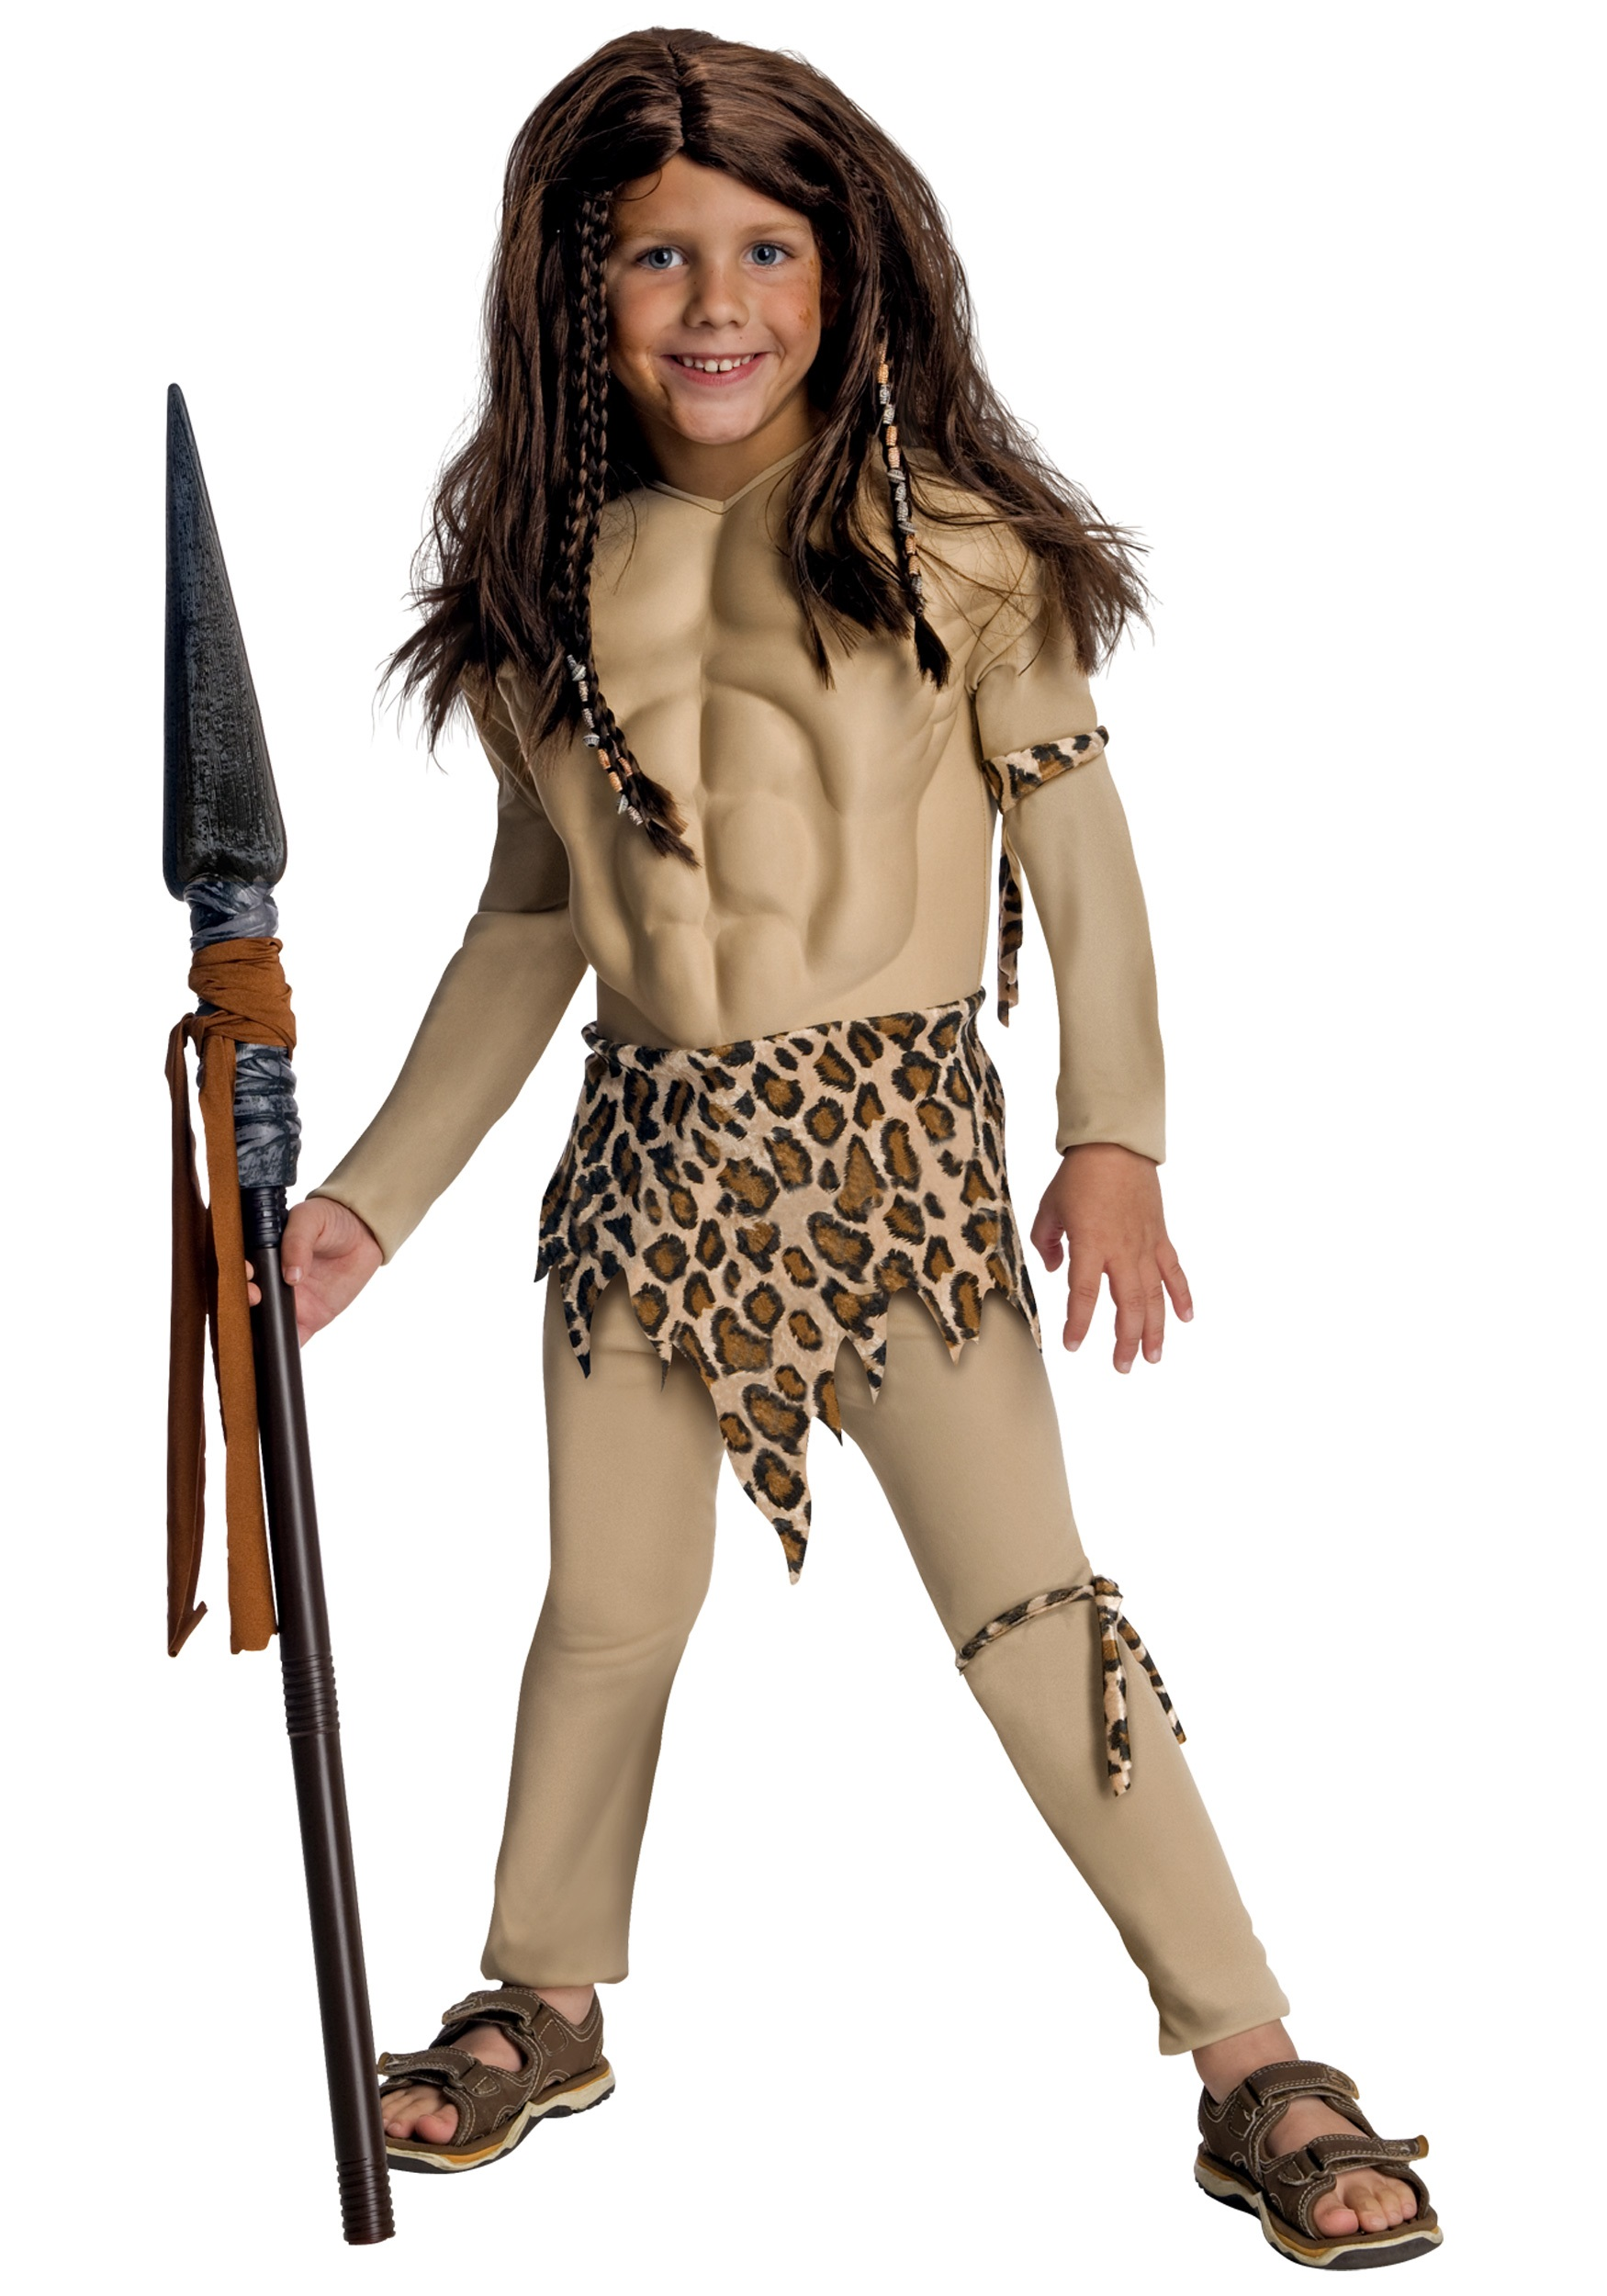 Toddler Tarzan Costume  sc 1 st  Halloween Costumes & Toddler Tarzan Costume - Halloween Costume Ideas 2016